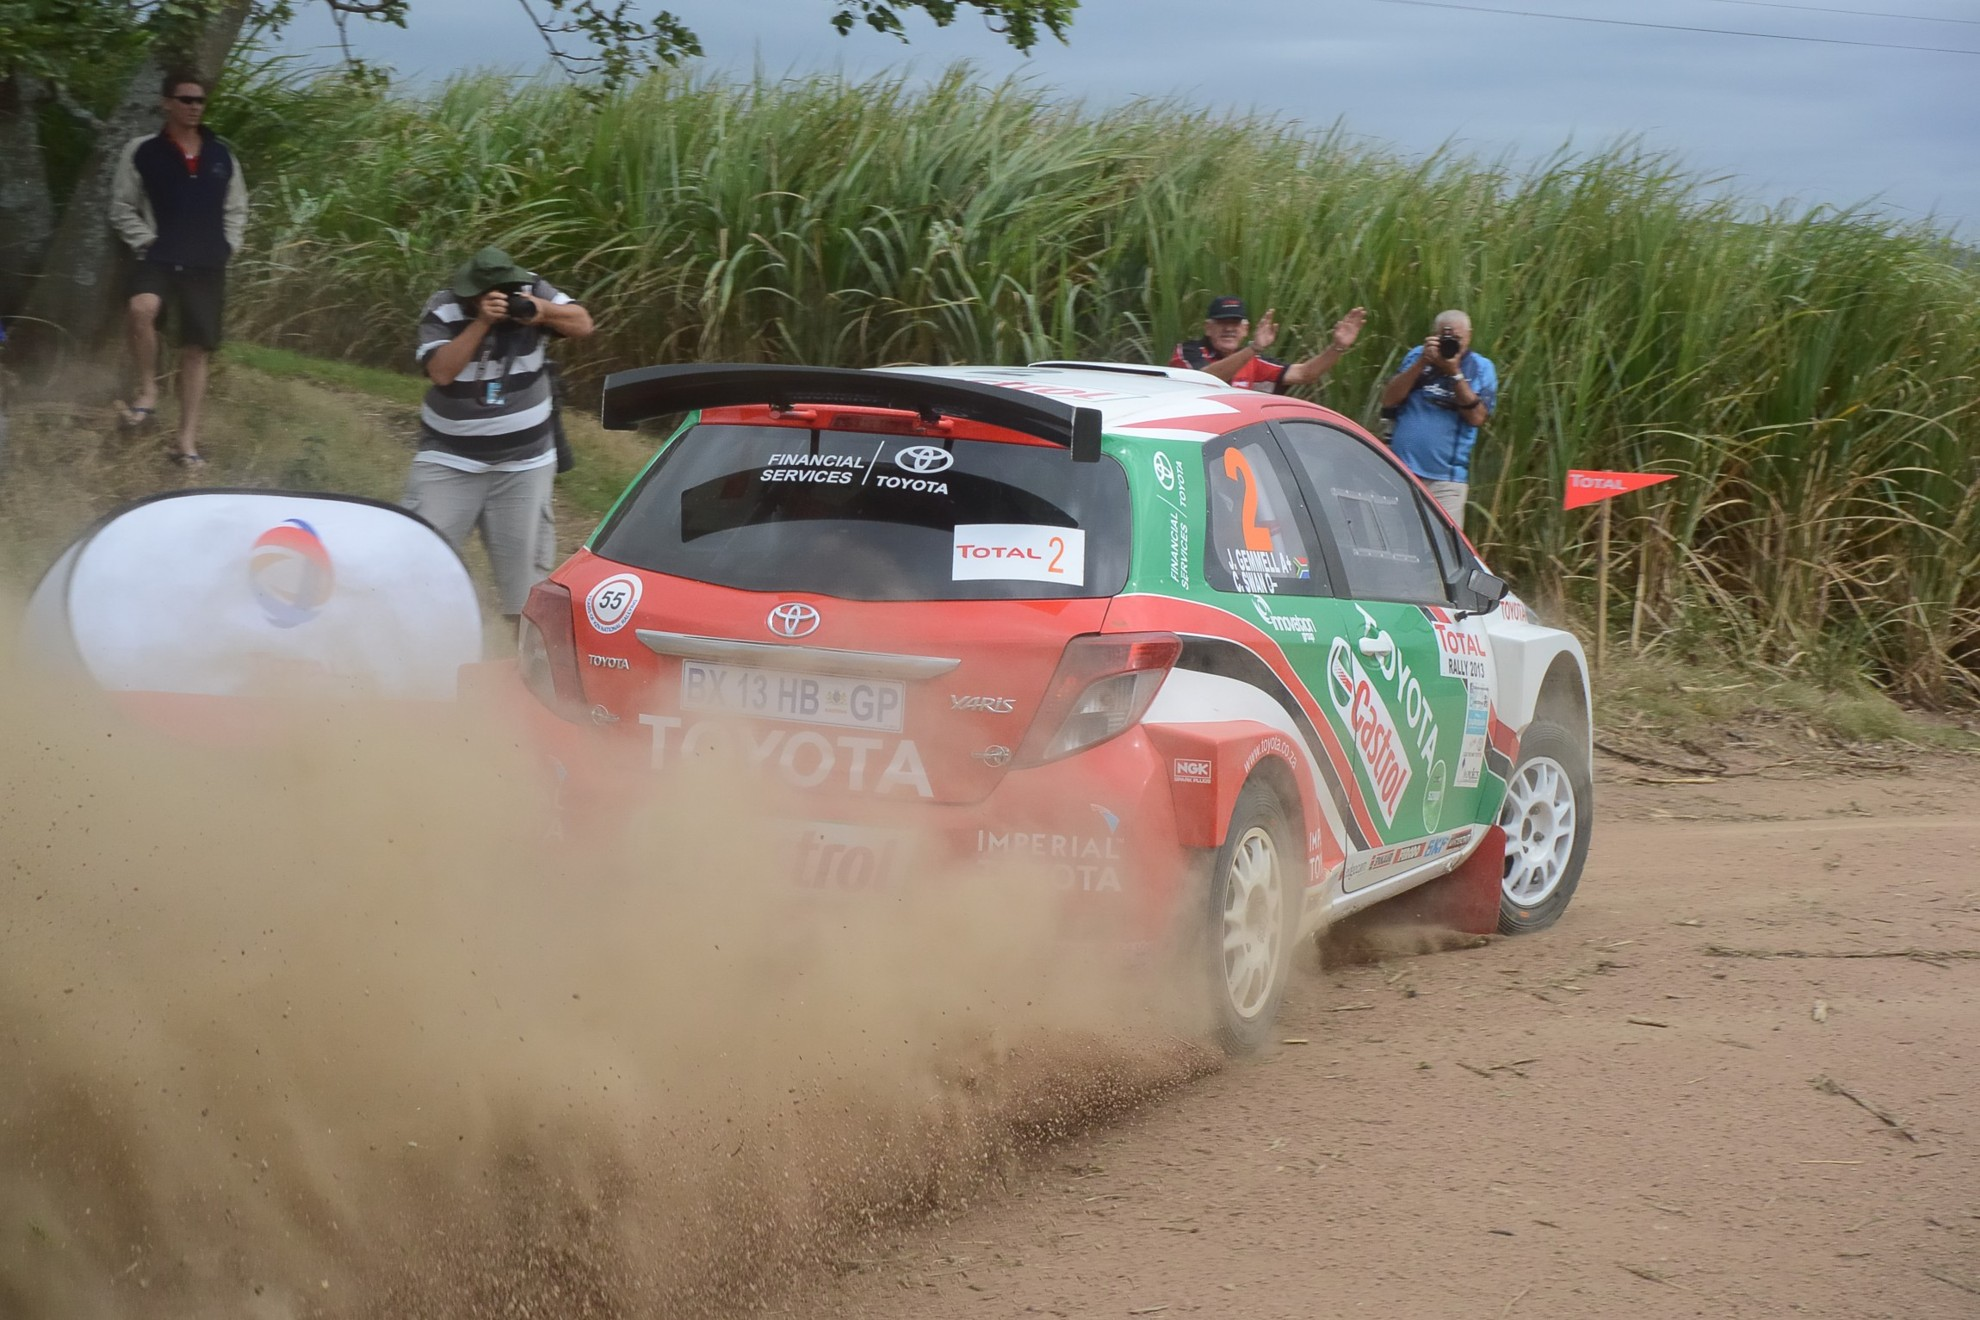 Toyota Yaris Racing